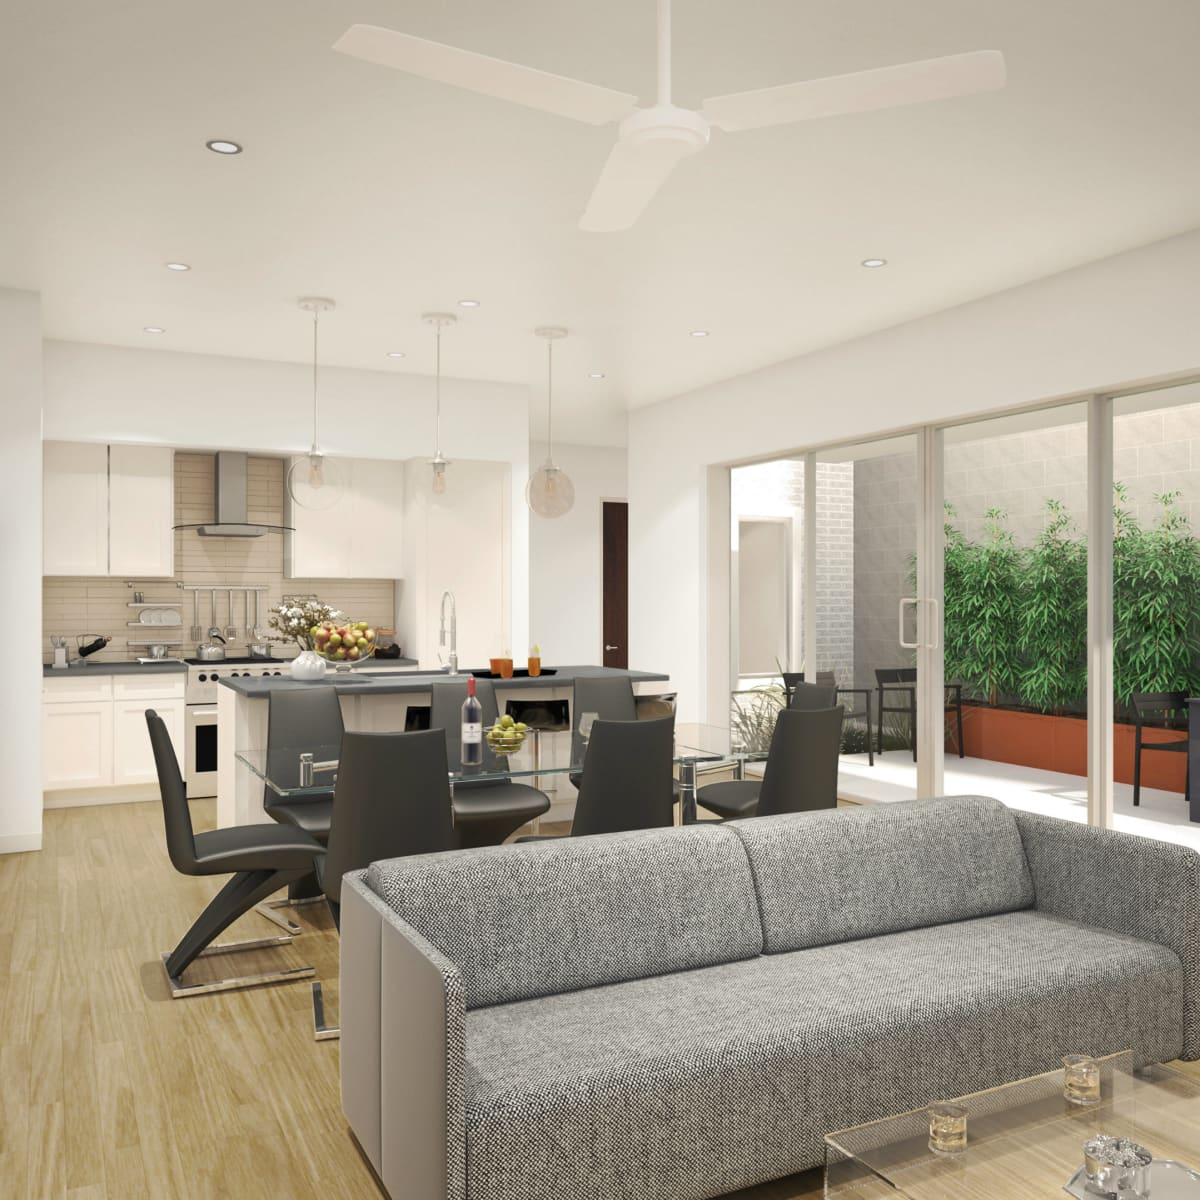 The Residences at CityLine